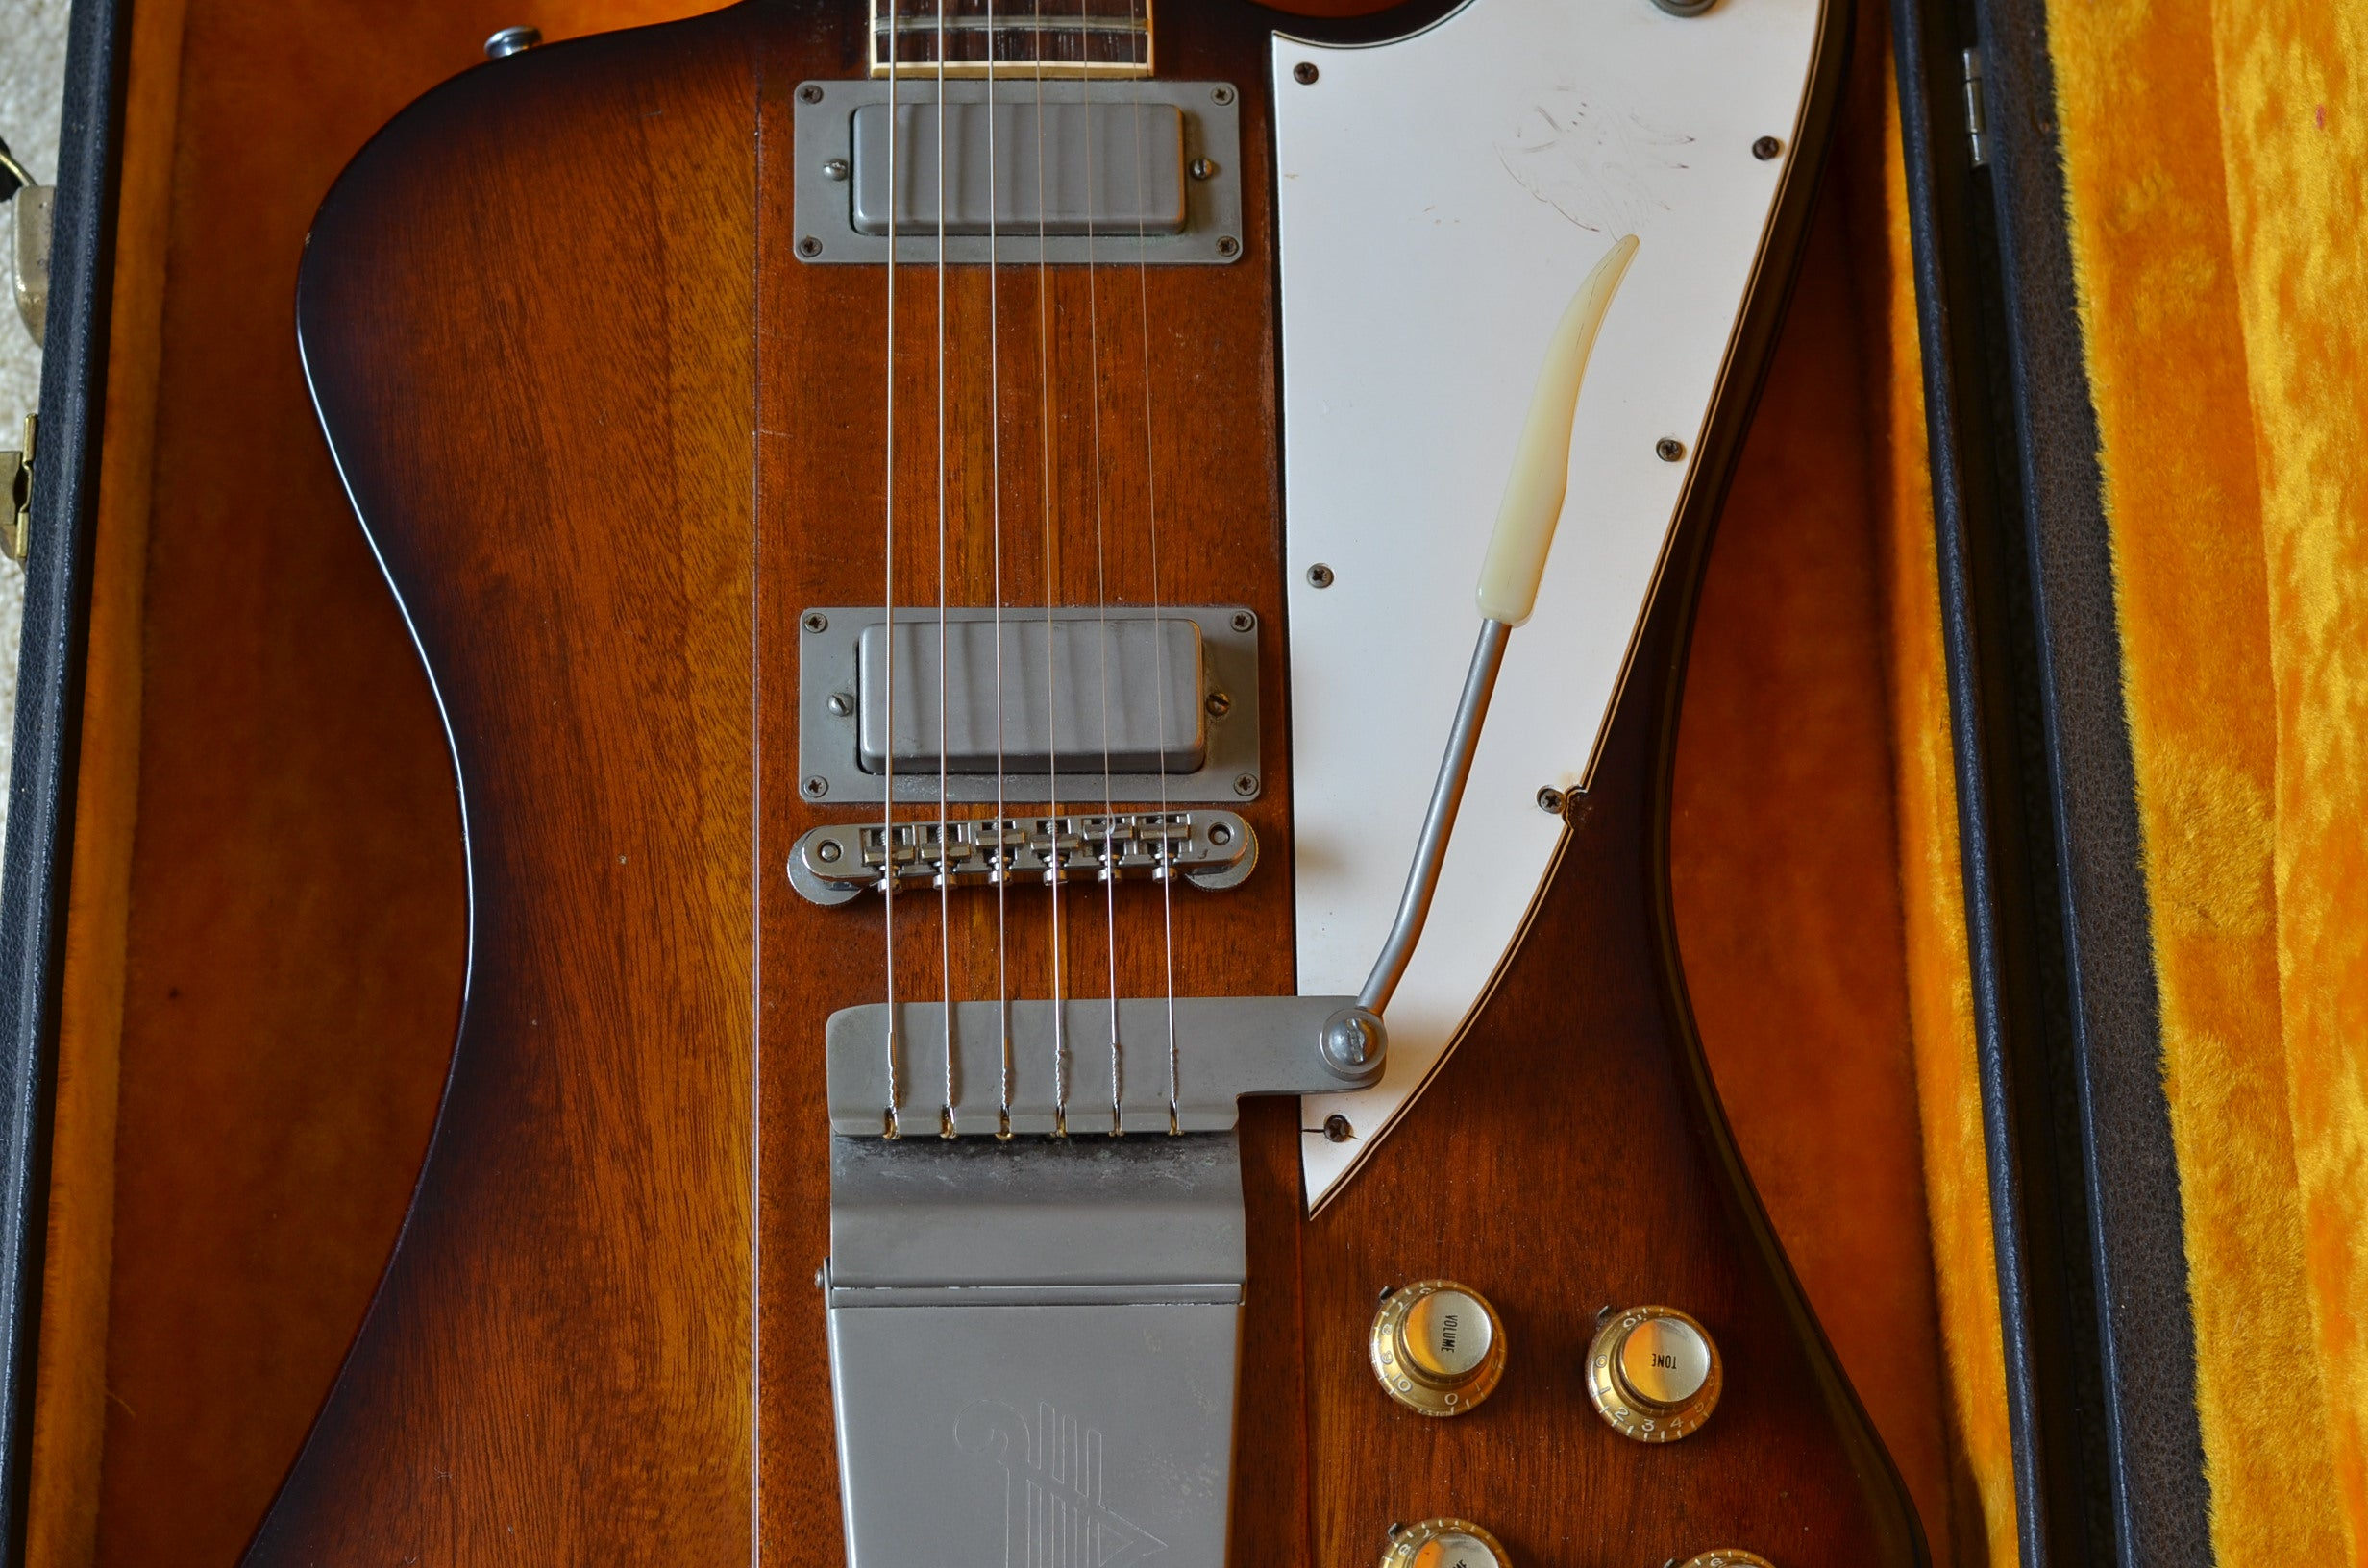 Gibson Firebird V 1964 vintage guitar dating and values